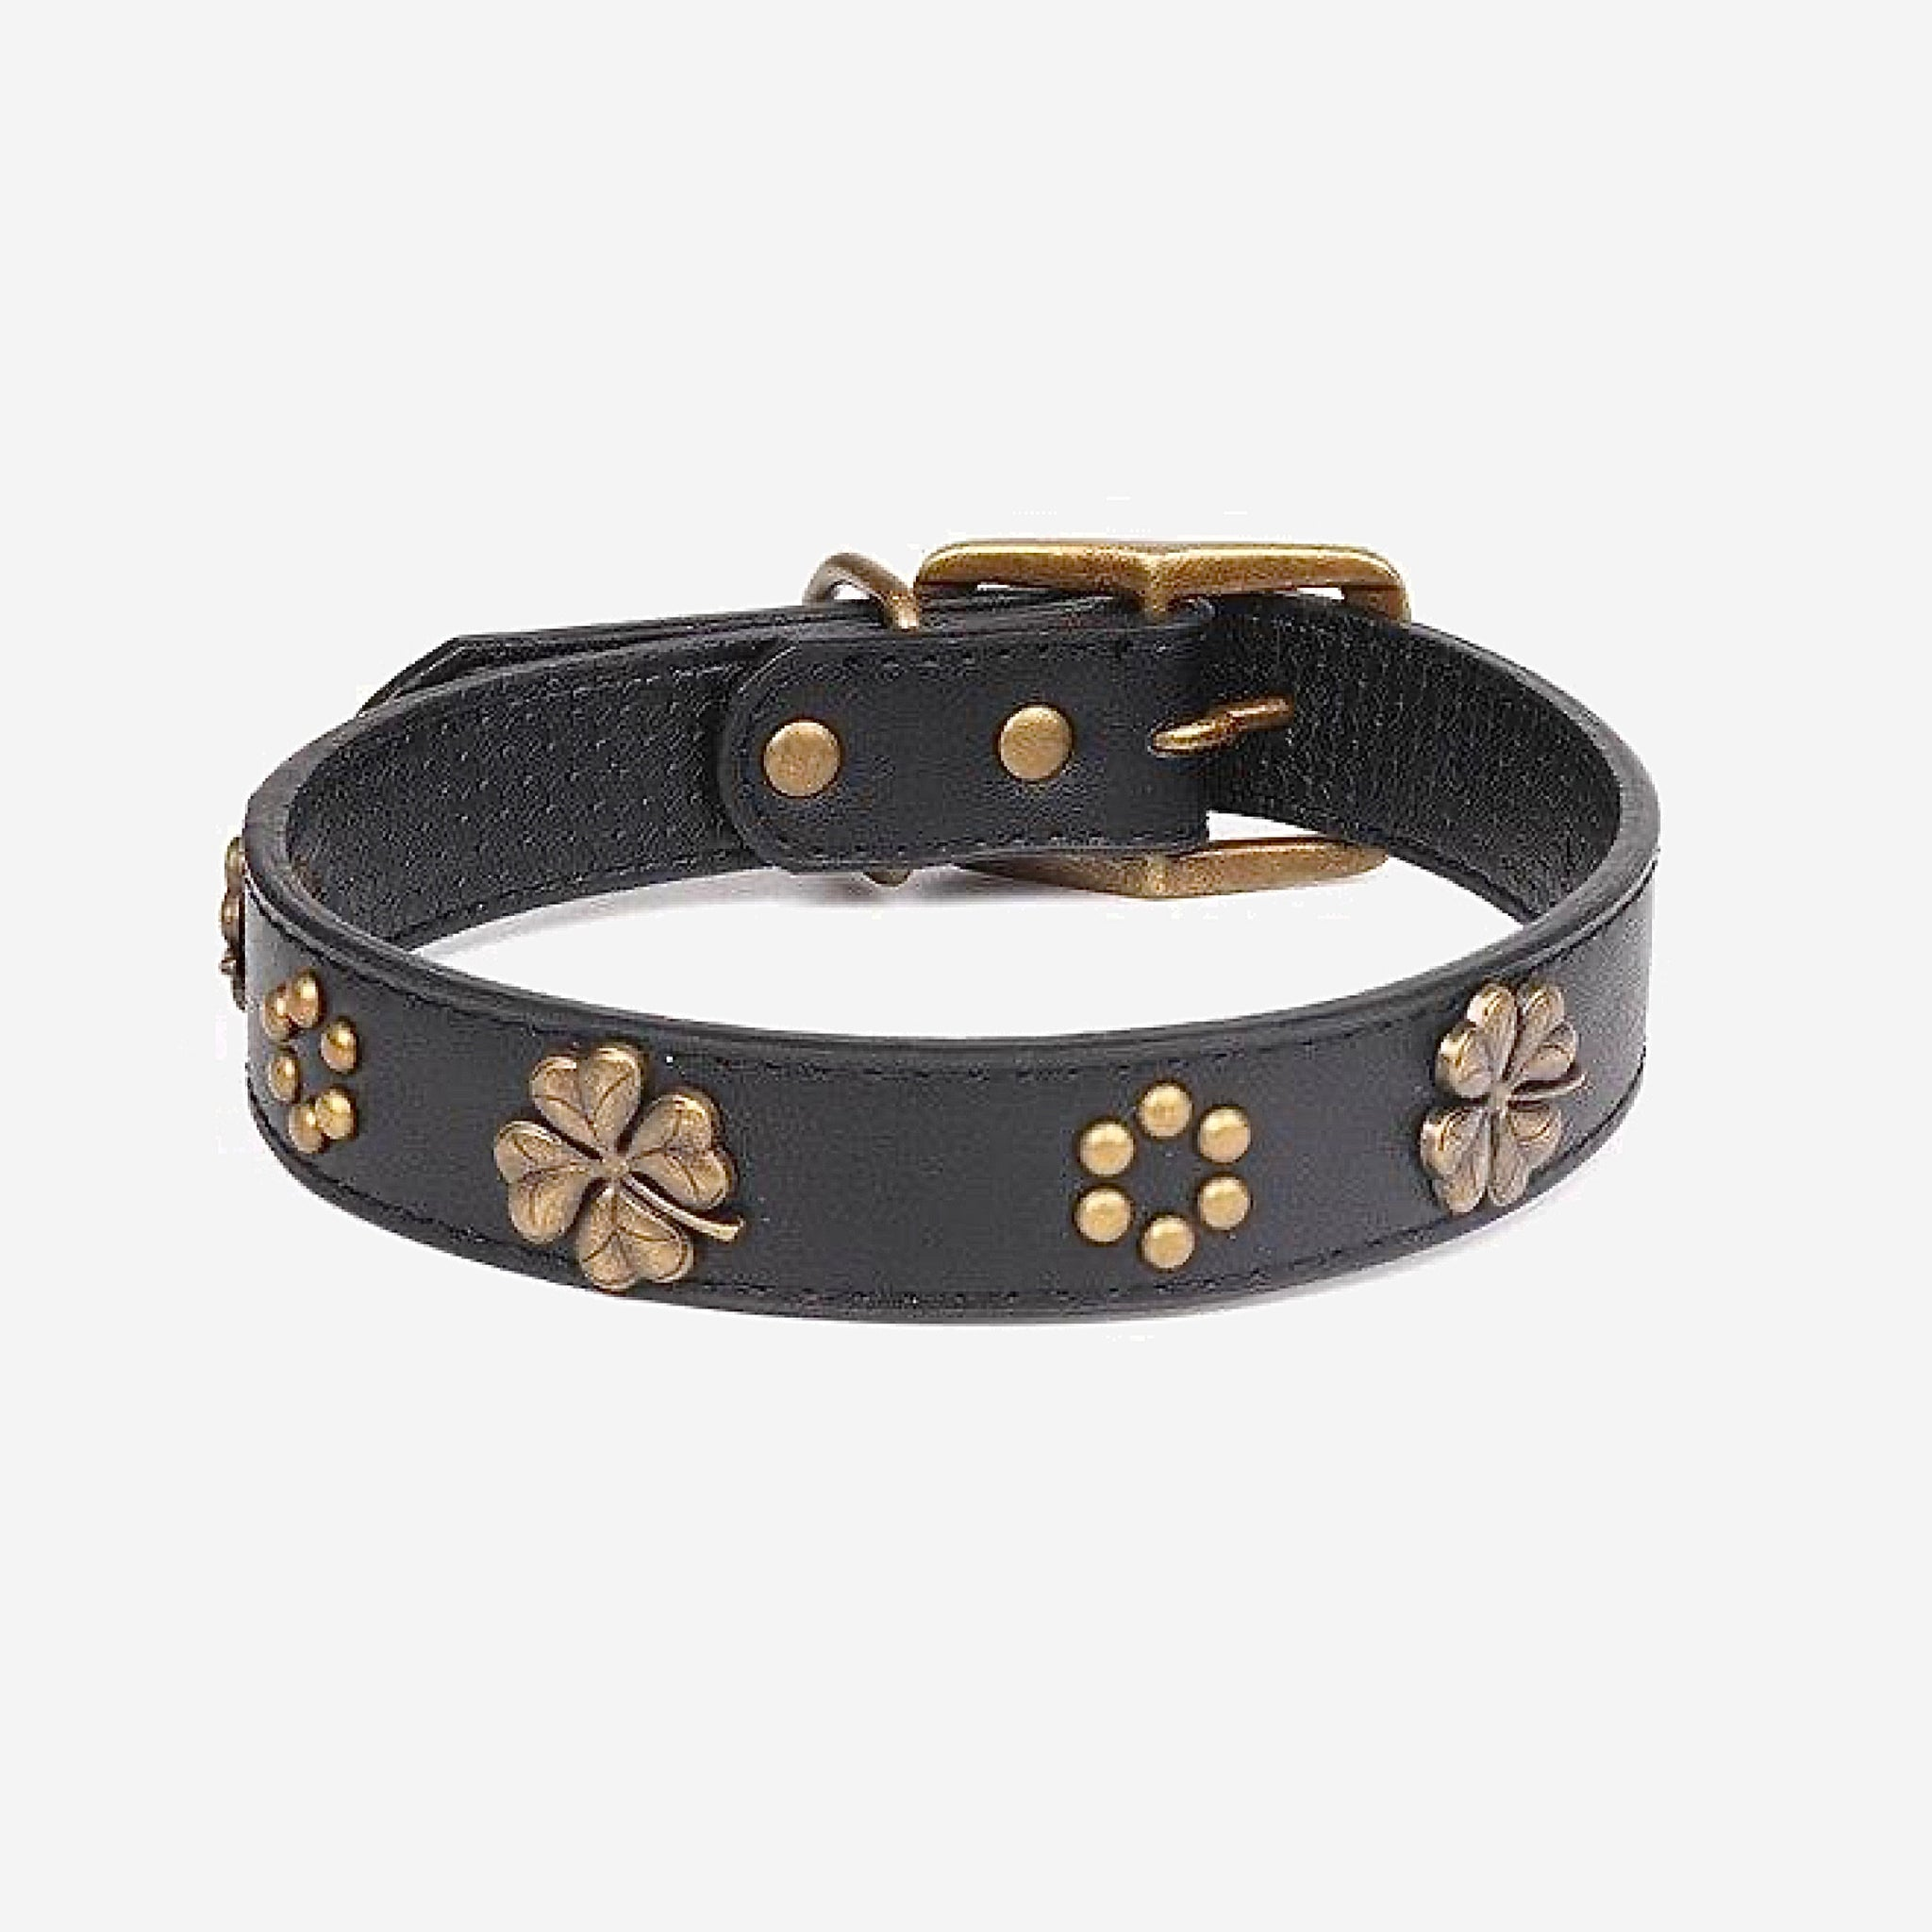 Leather Dog Collar    Black Adjustable Copper Shamrock Decoration Dogs Collar Necklace Martingale Pet Accessories Trending Stye